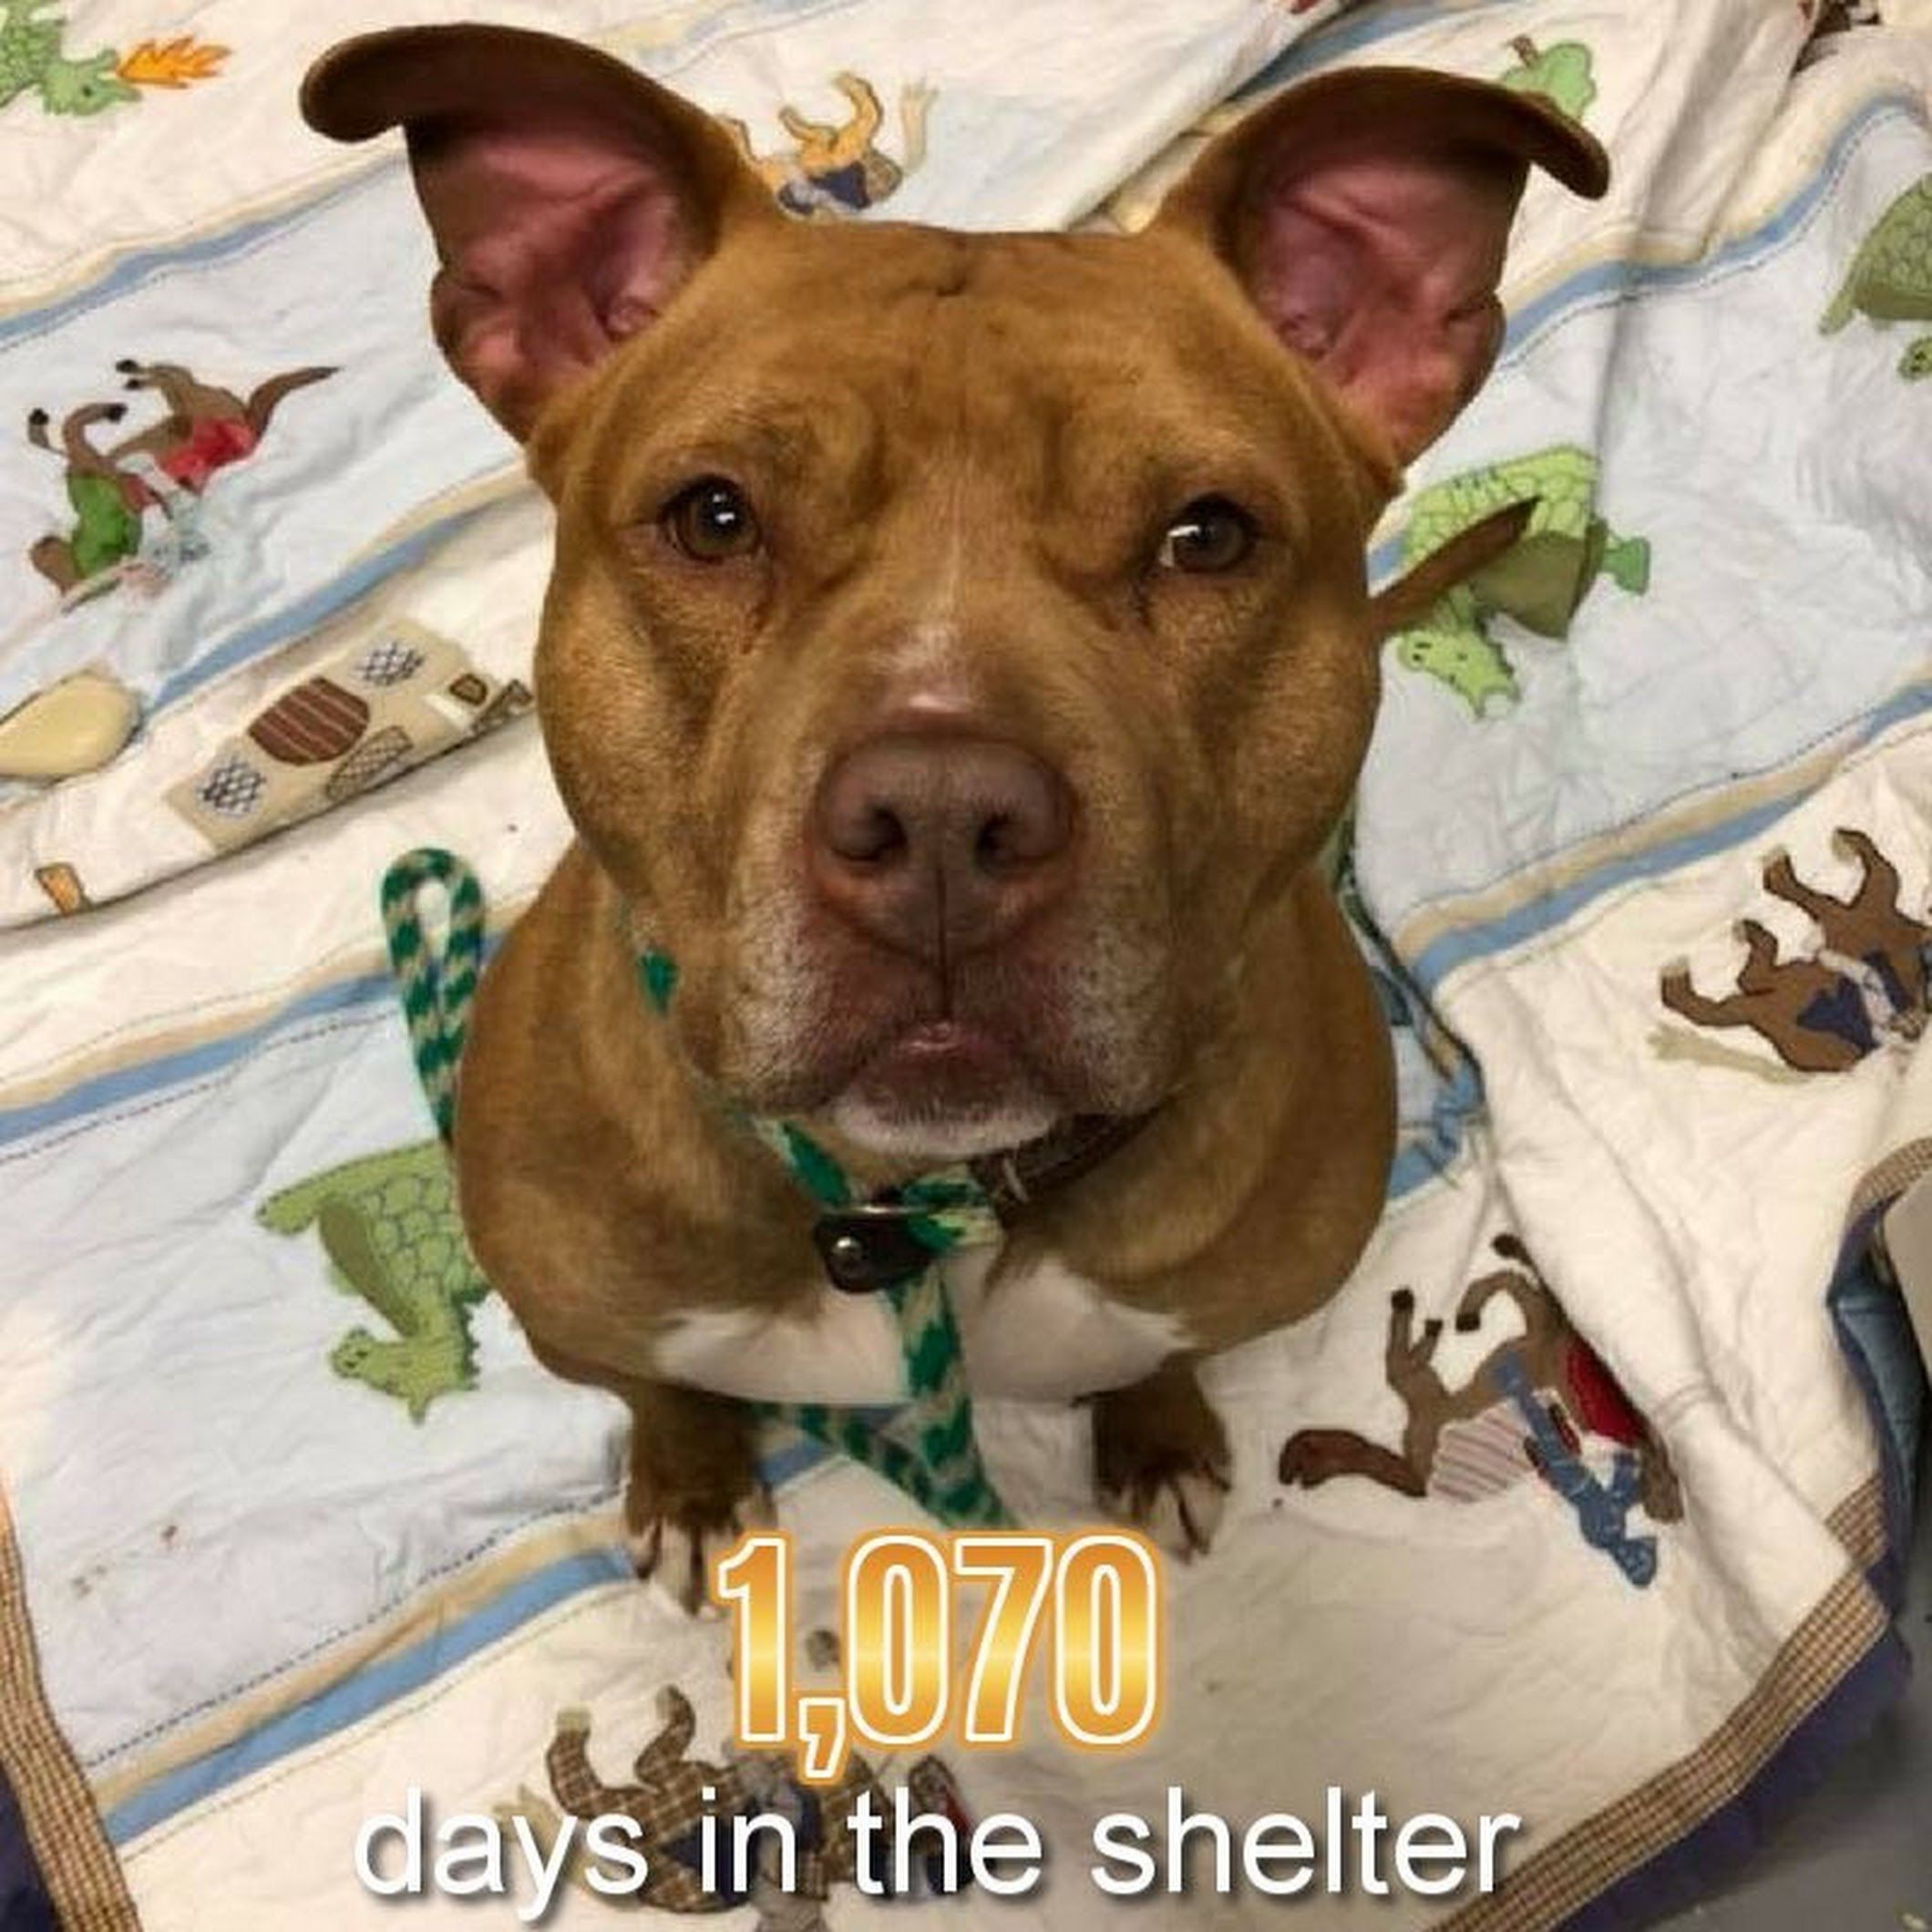 1,070 DAYS IN THE SHELTER 😓 Trooper is available at